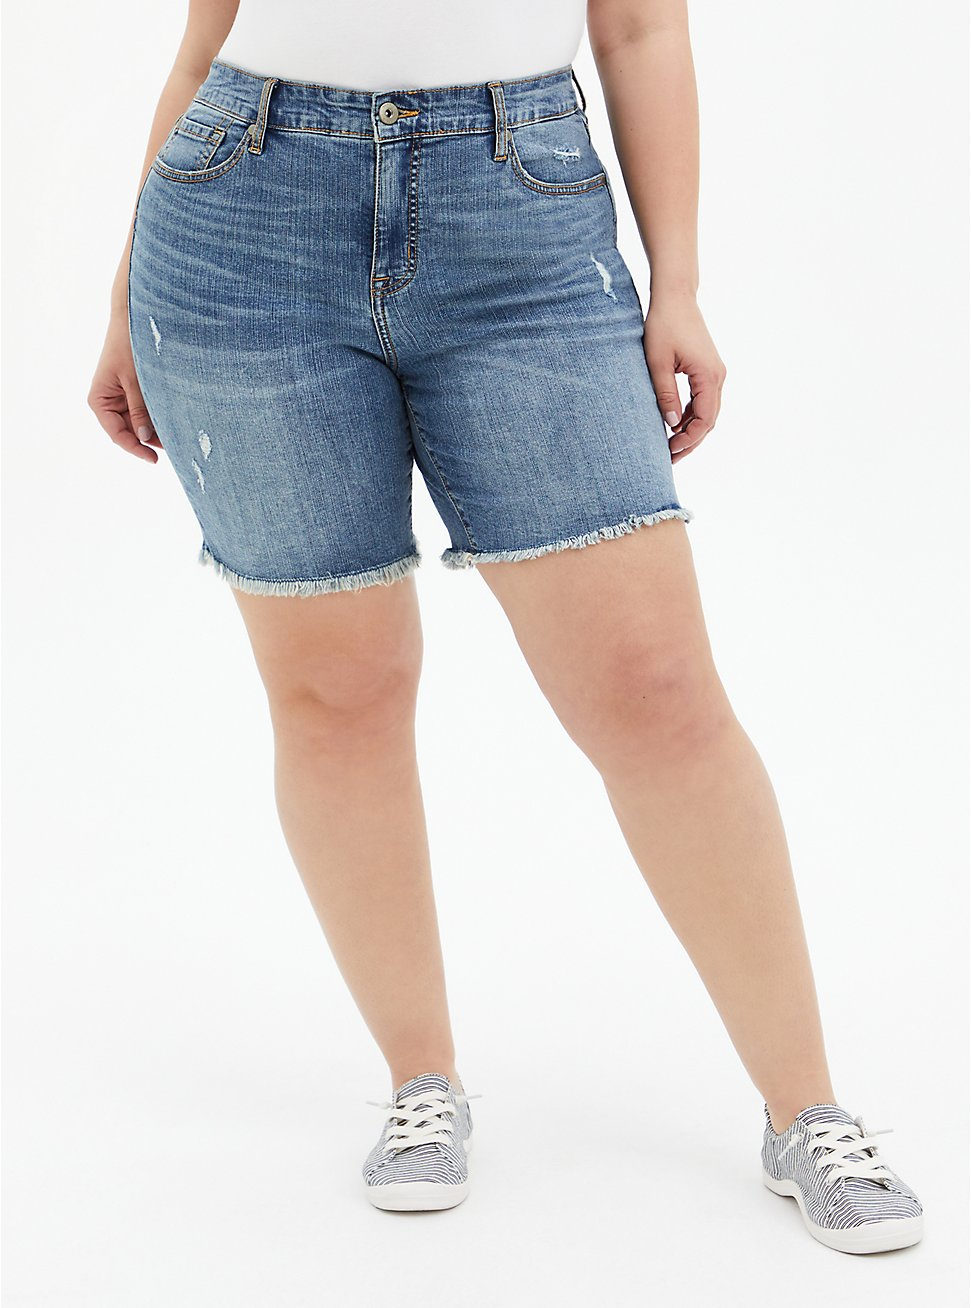 High Rise Bermuda Short - Vintage Stretch Medium Wash , DURANGO, hi-res